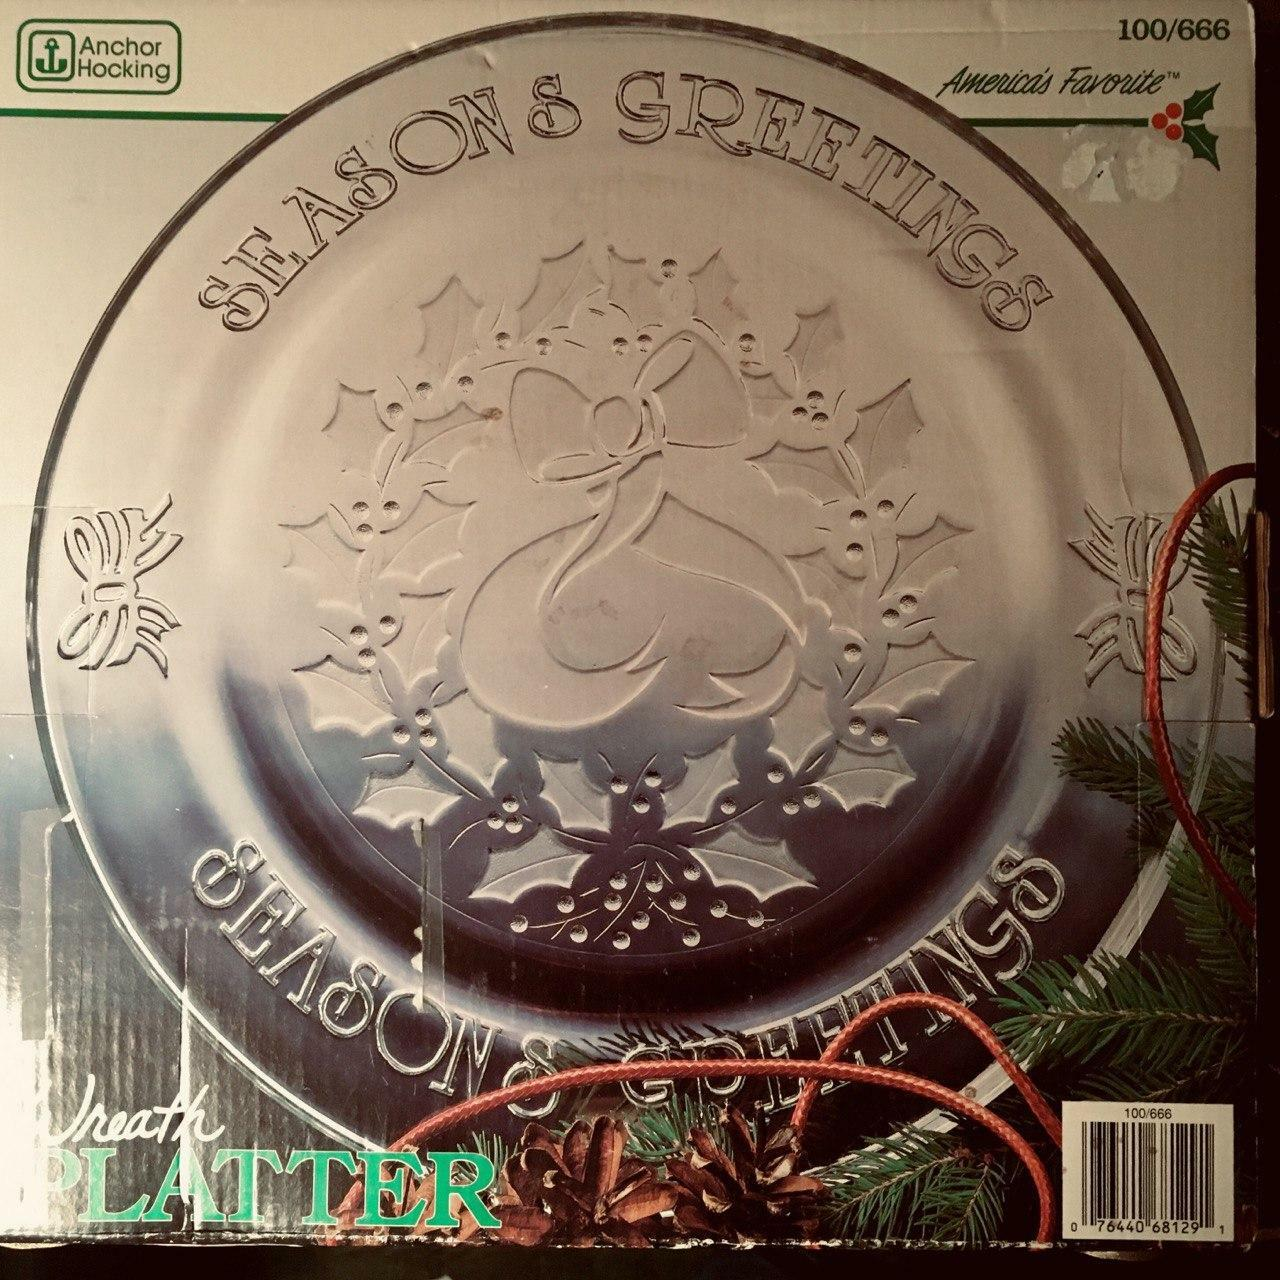 Anchor Hocking Glass Clear Season s Greetings 12 305mm Platter - $22.79